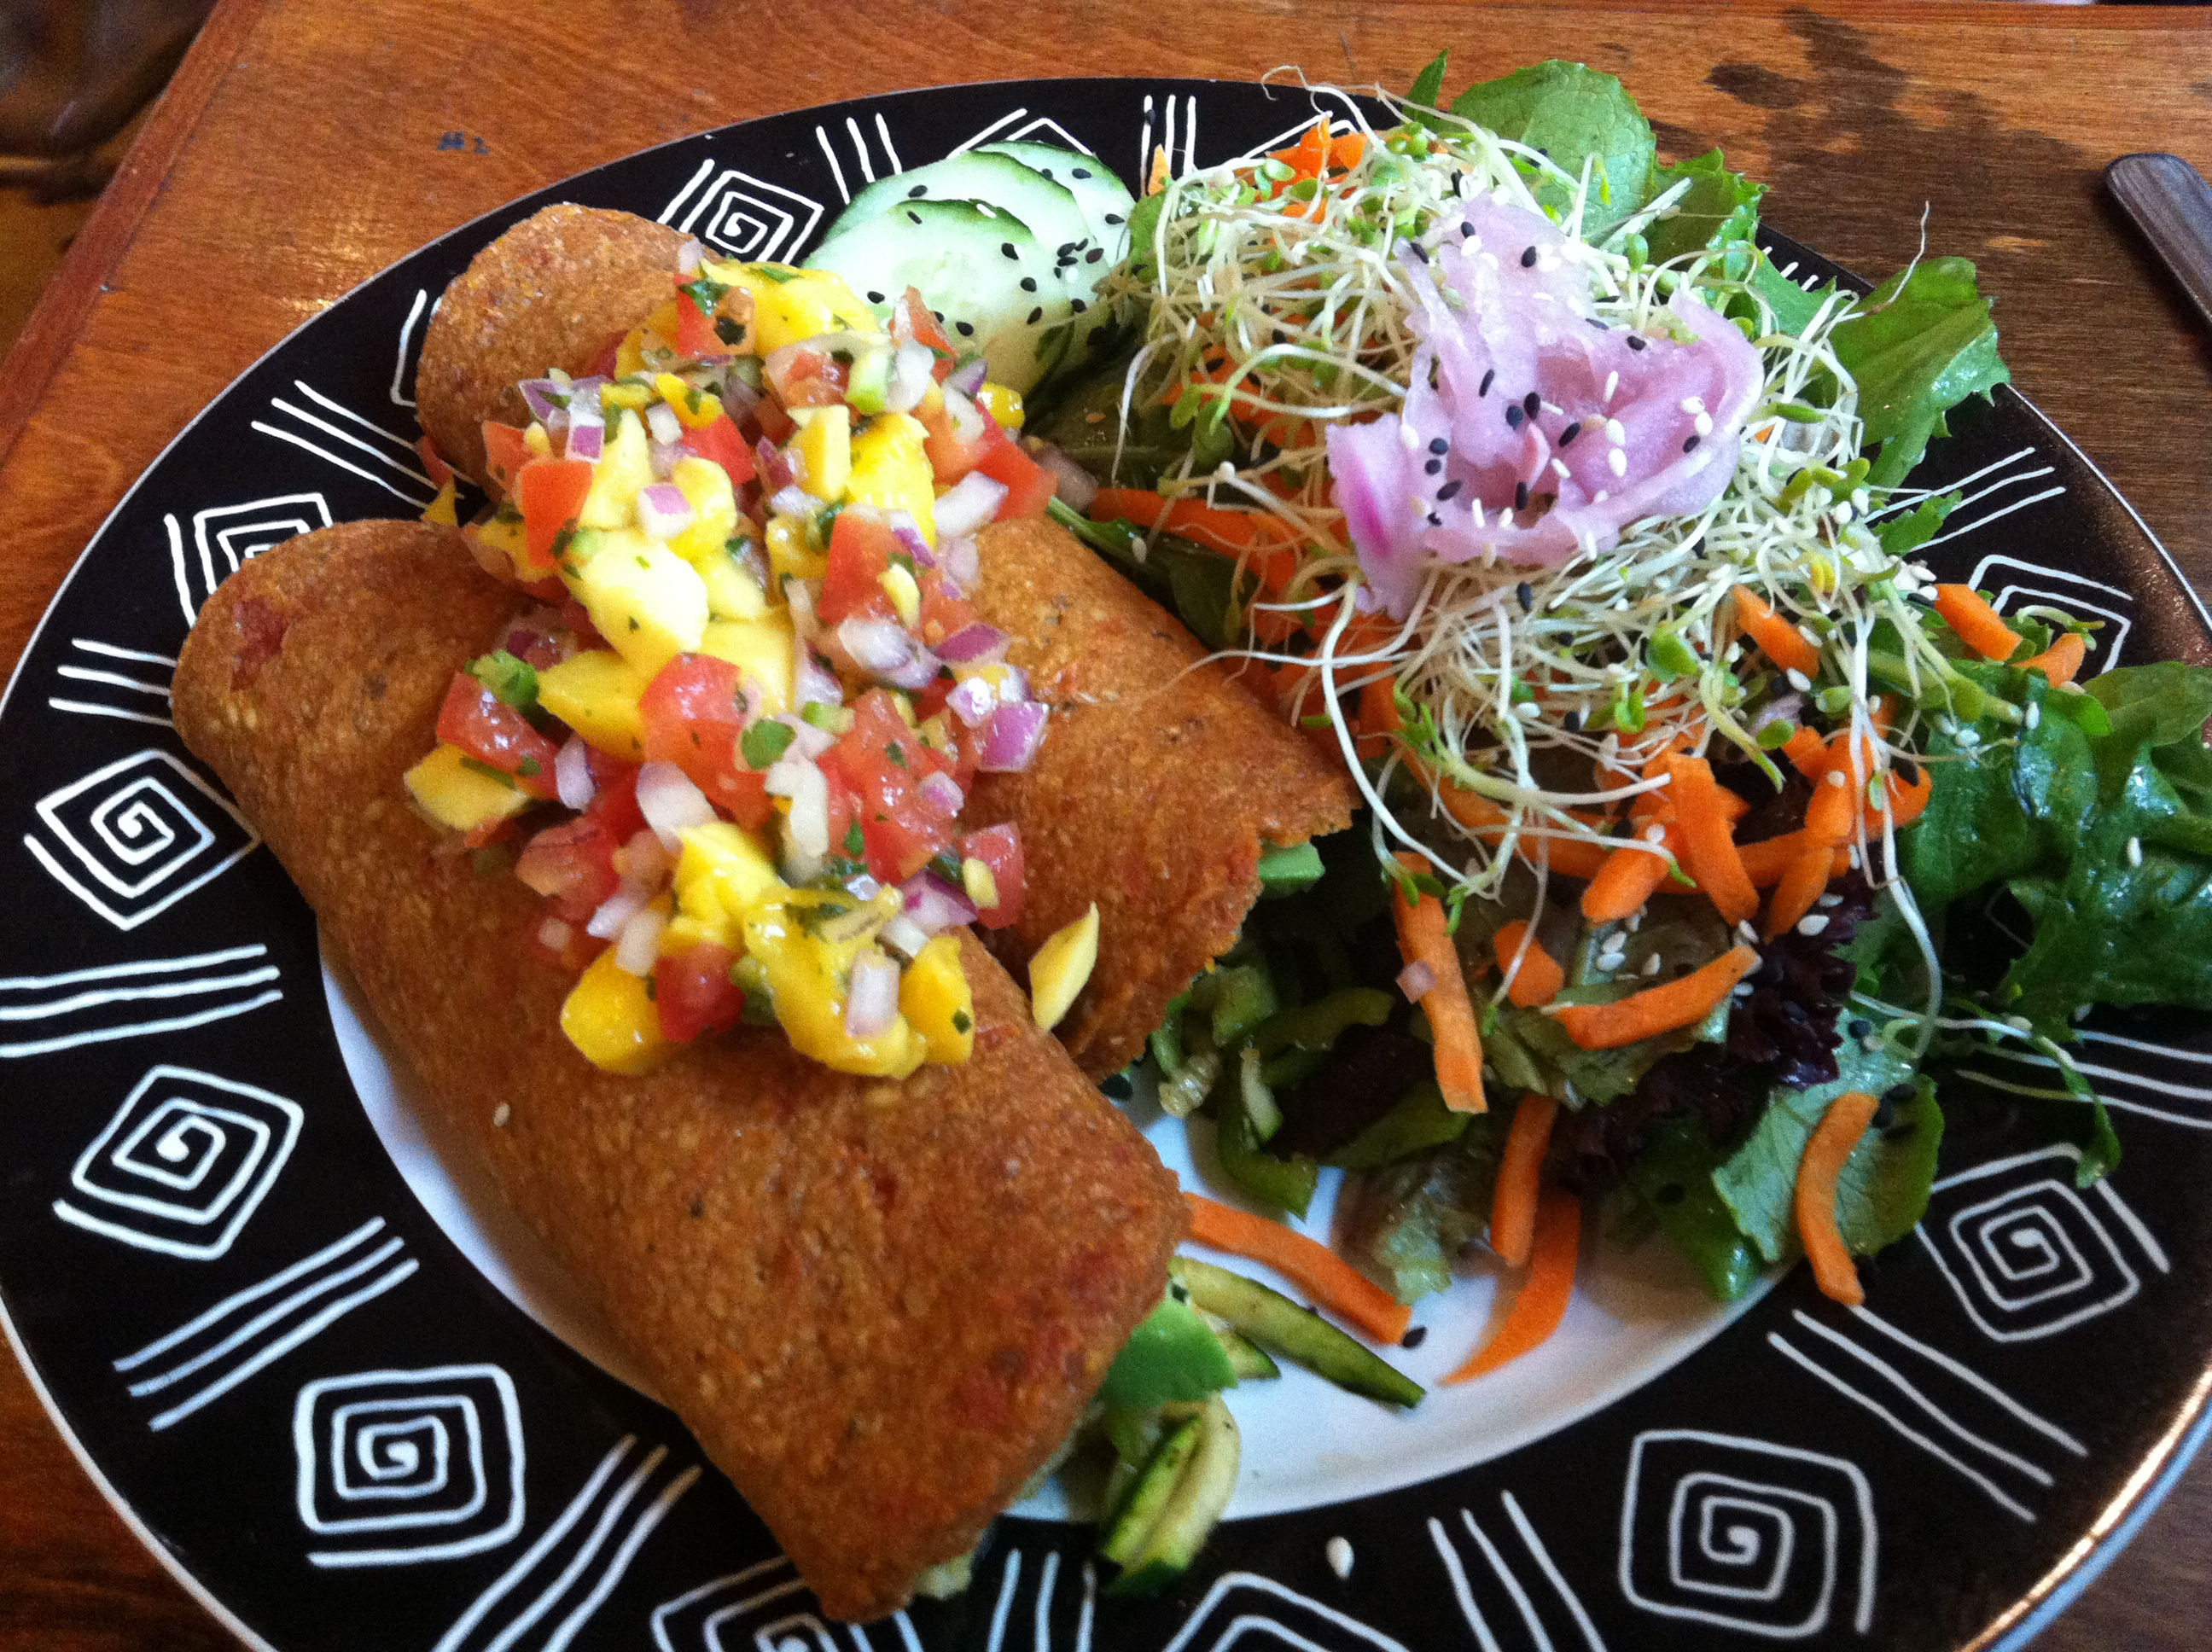 SEATTLE – Chaco Canyon Organic Cafe